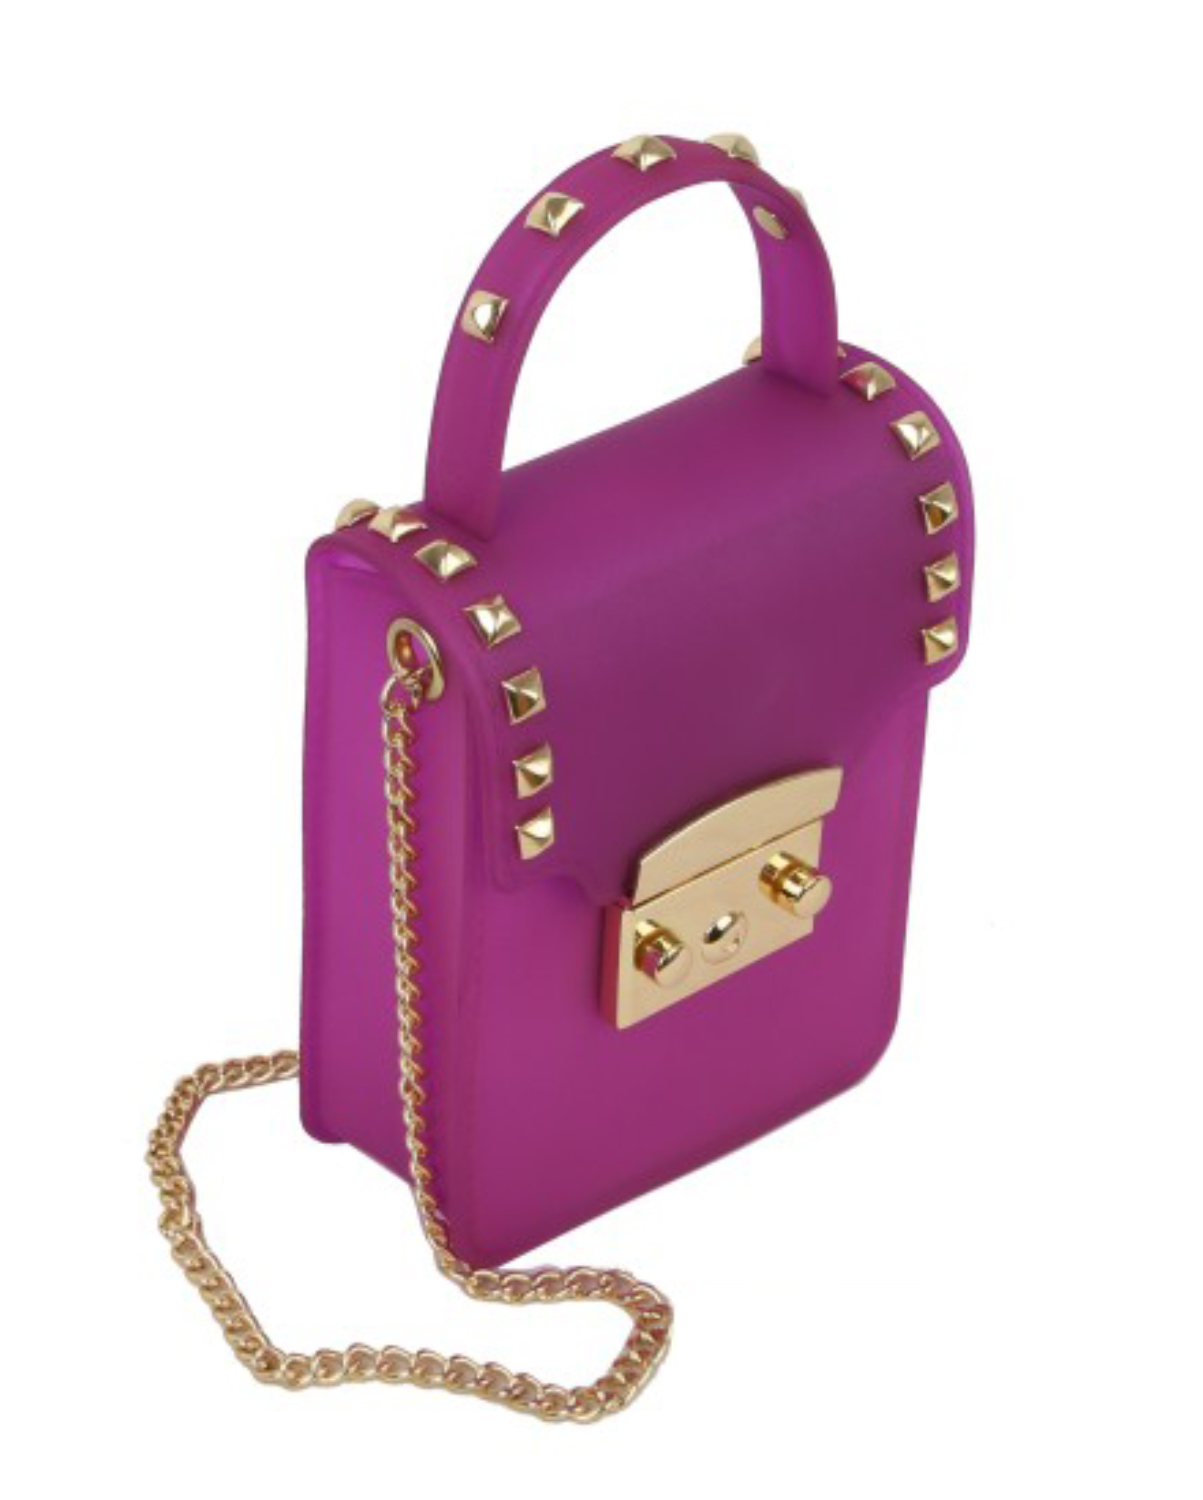 LGZ014(PP)-S23-wholesale-messenger-bag-jelly-silicorn-solid-color-flap-chevron-gold-chain-convertible-embossed(0).jpg